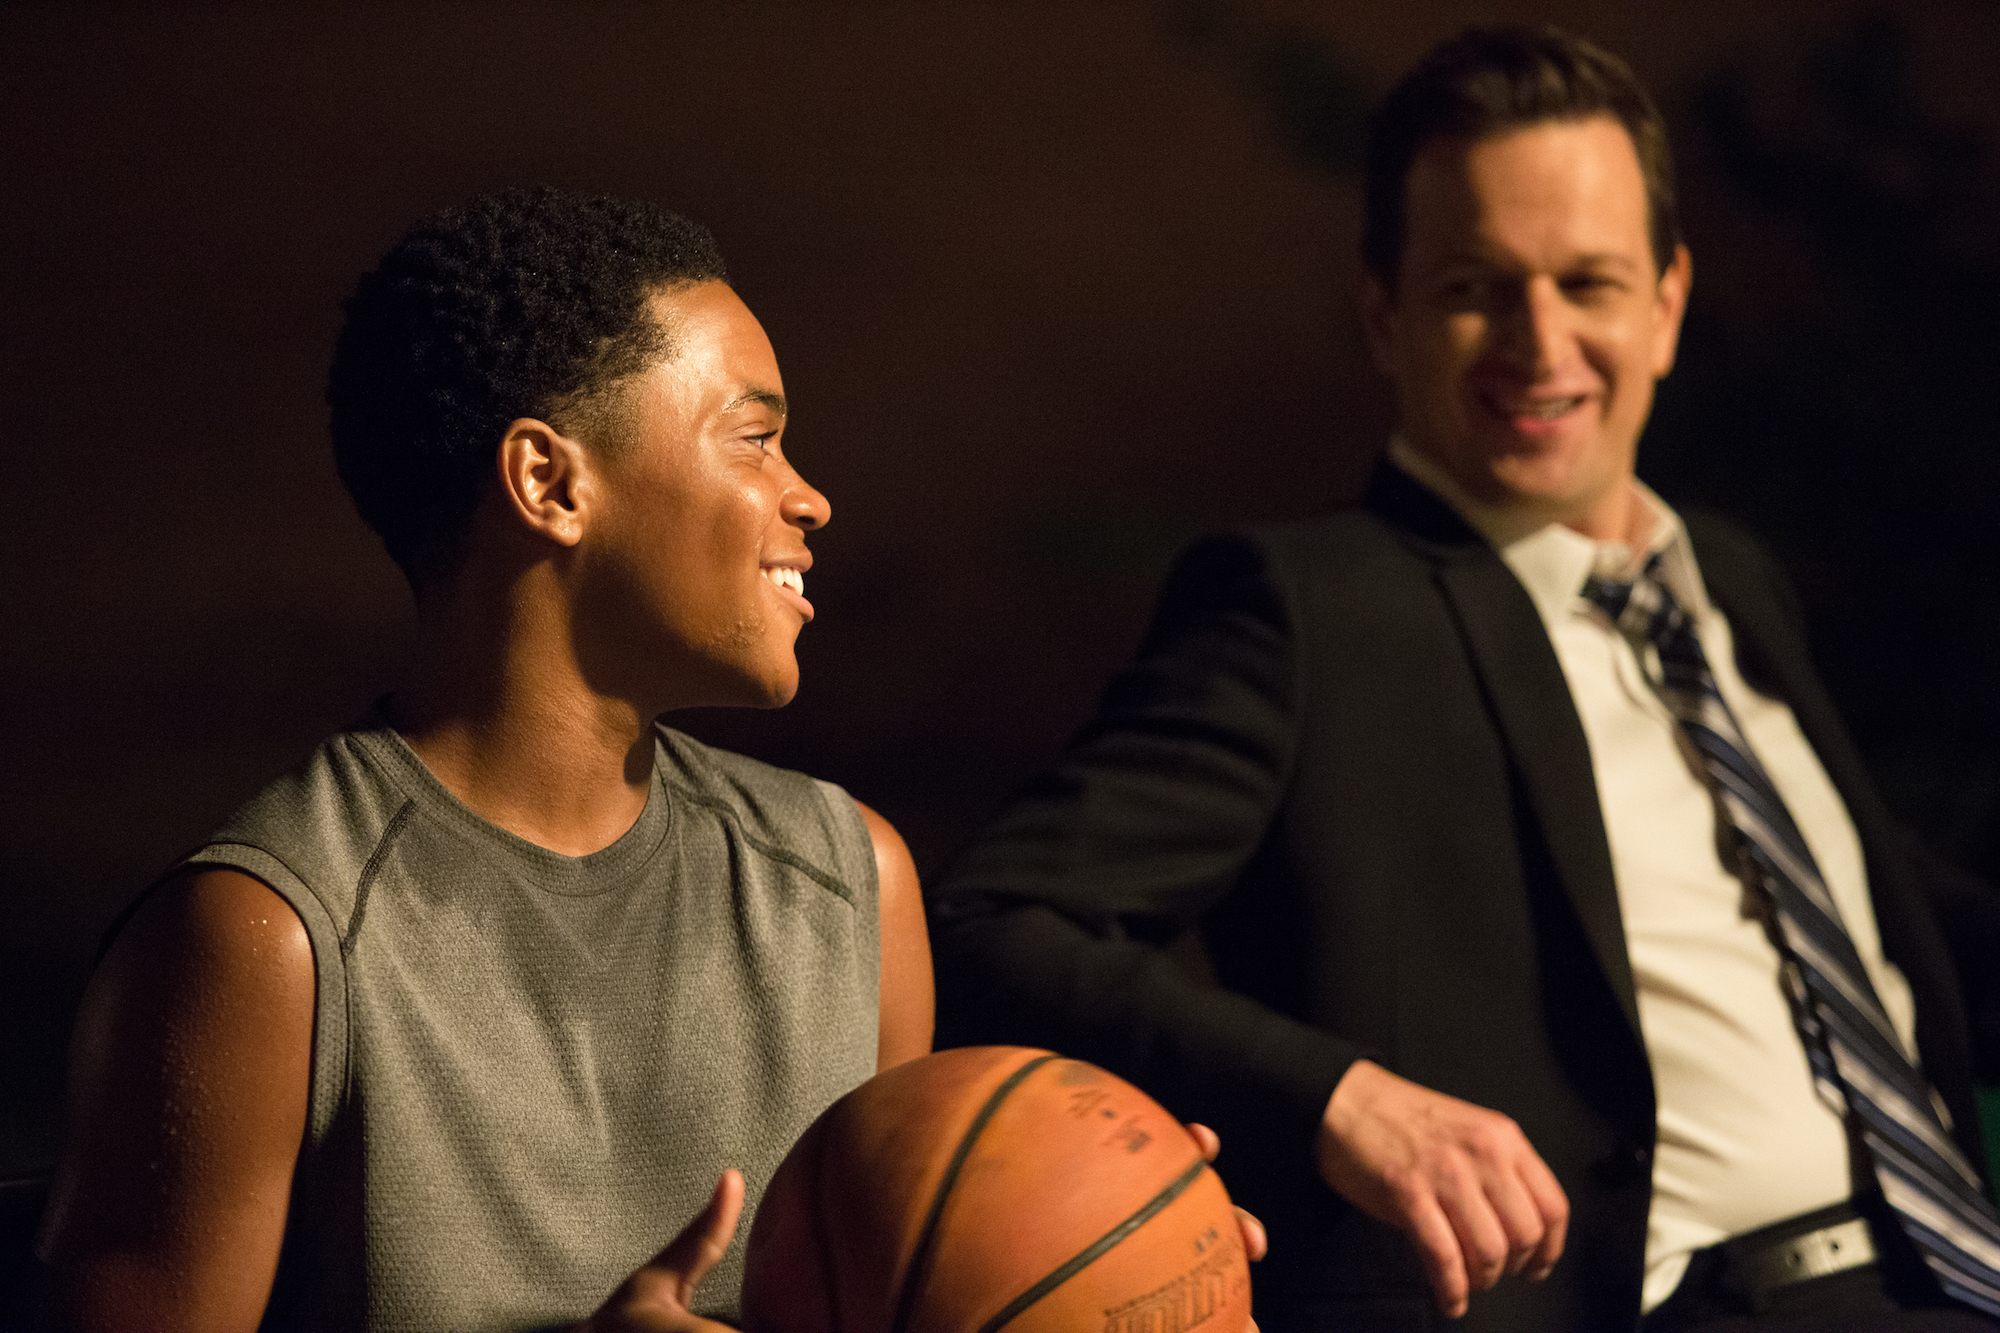 michael rainey jr. josh charles amateur